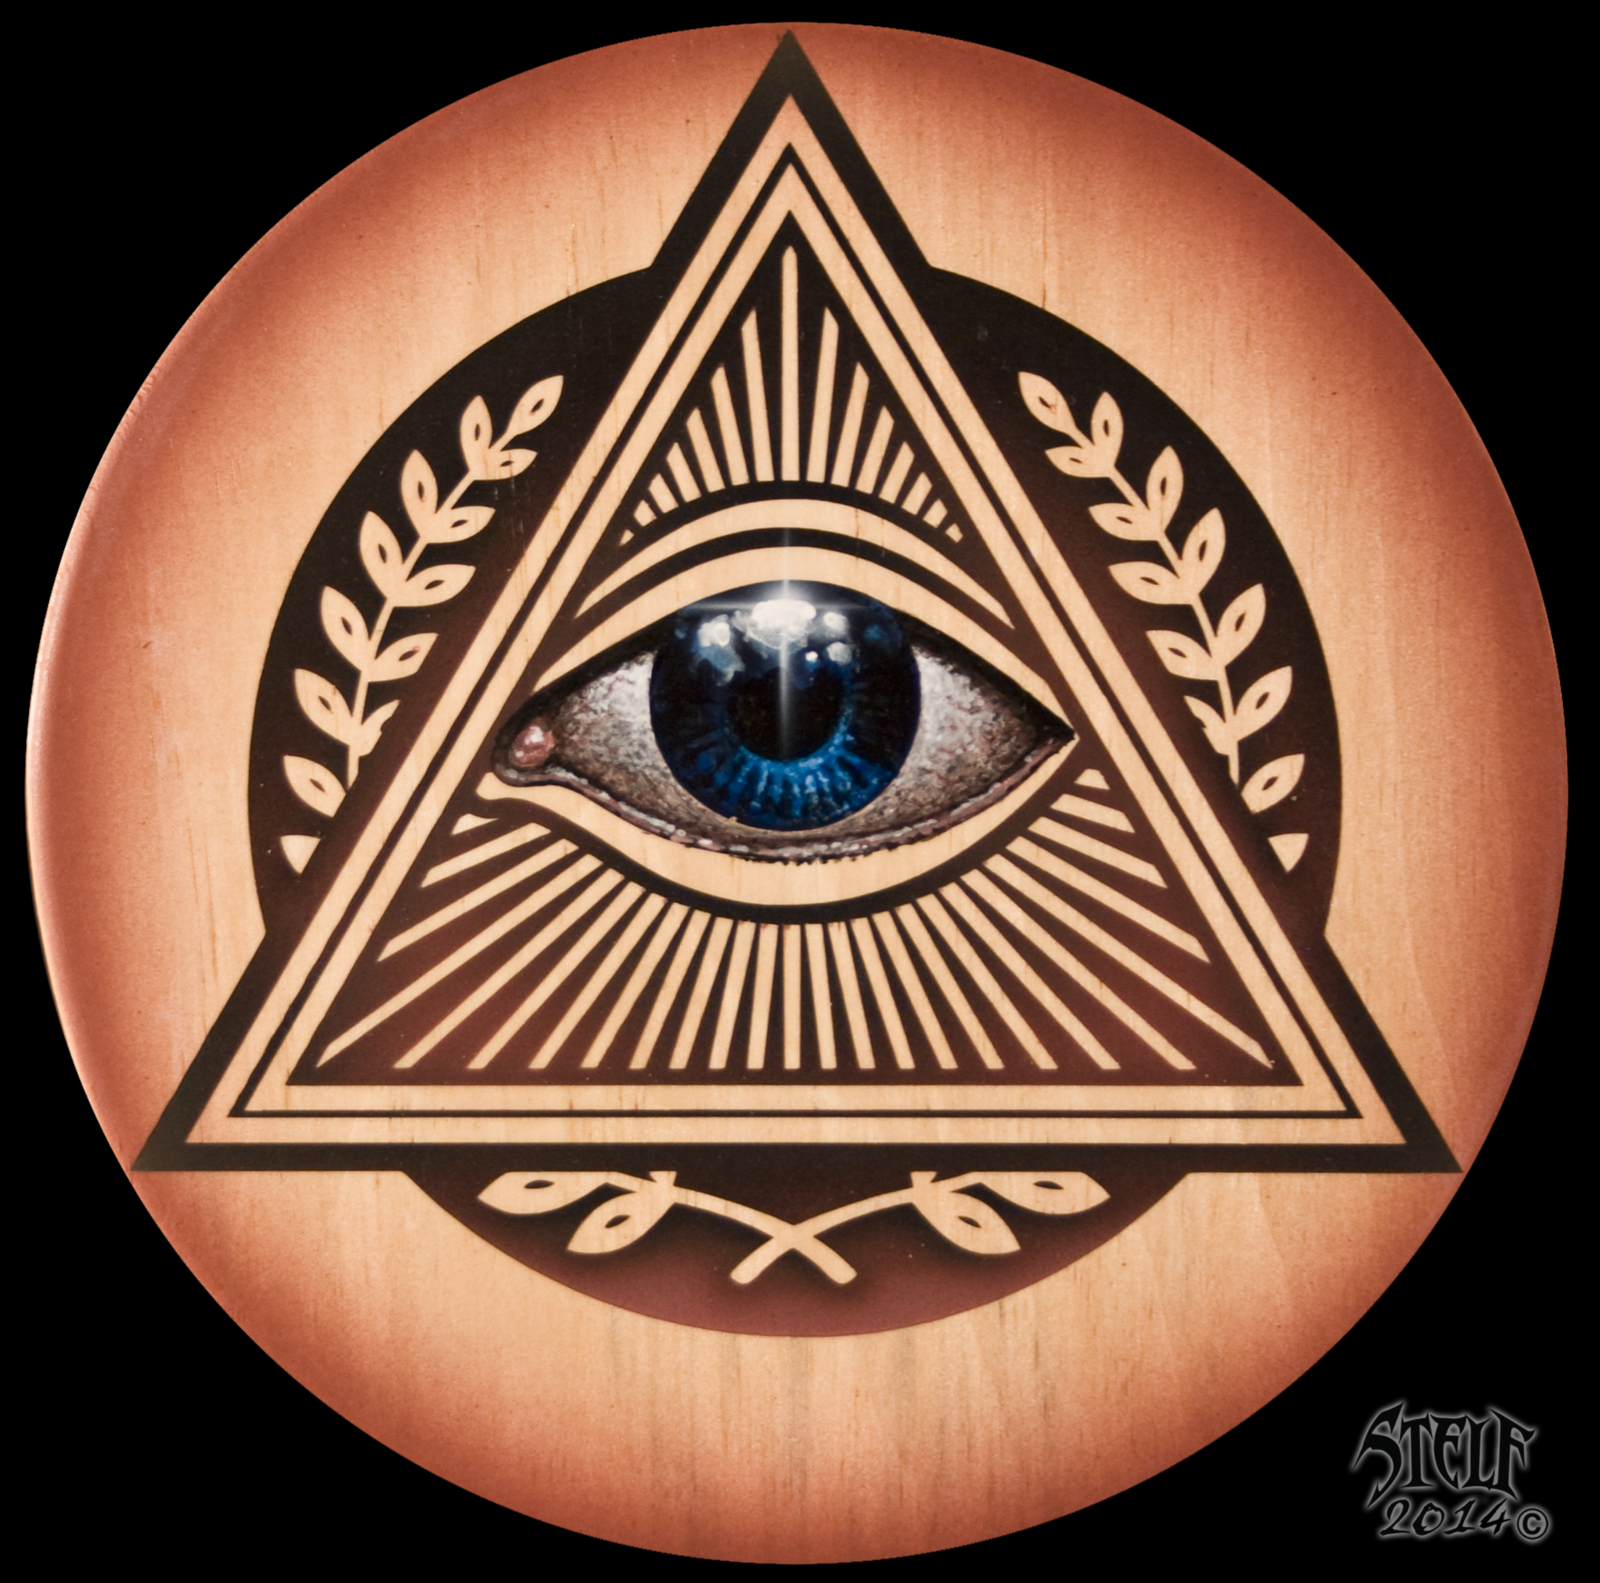 all_seeing_eye_12_by_stelf_2014d7qpitc.png (1600×1583